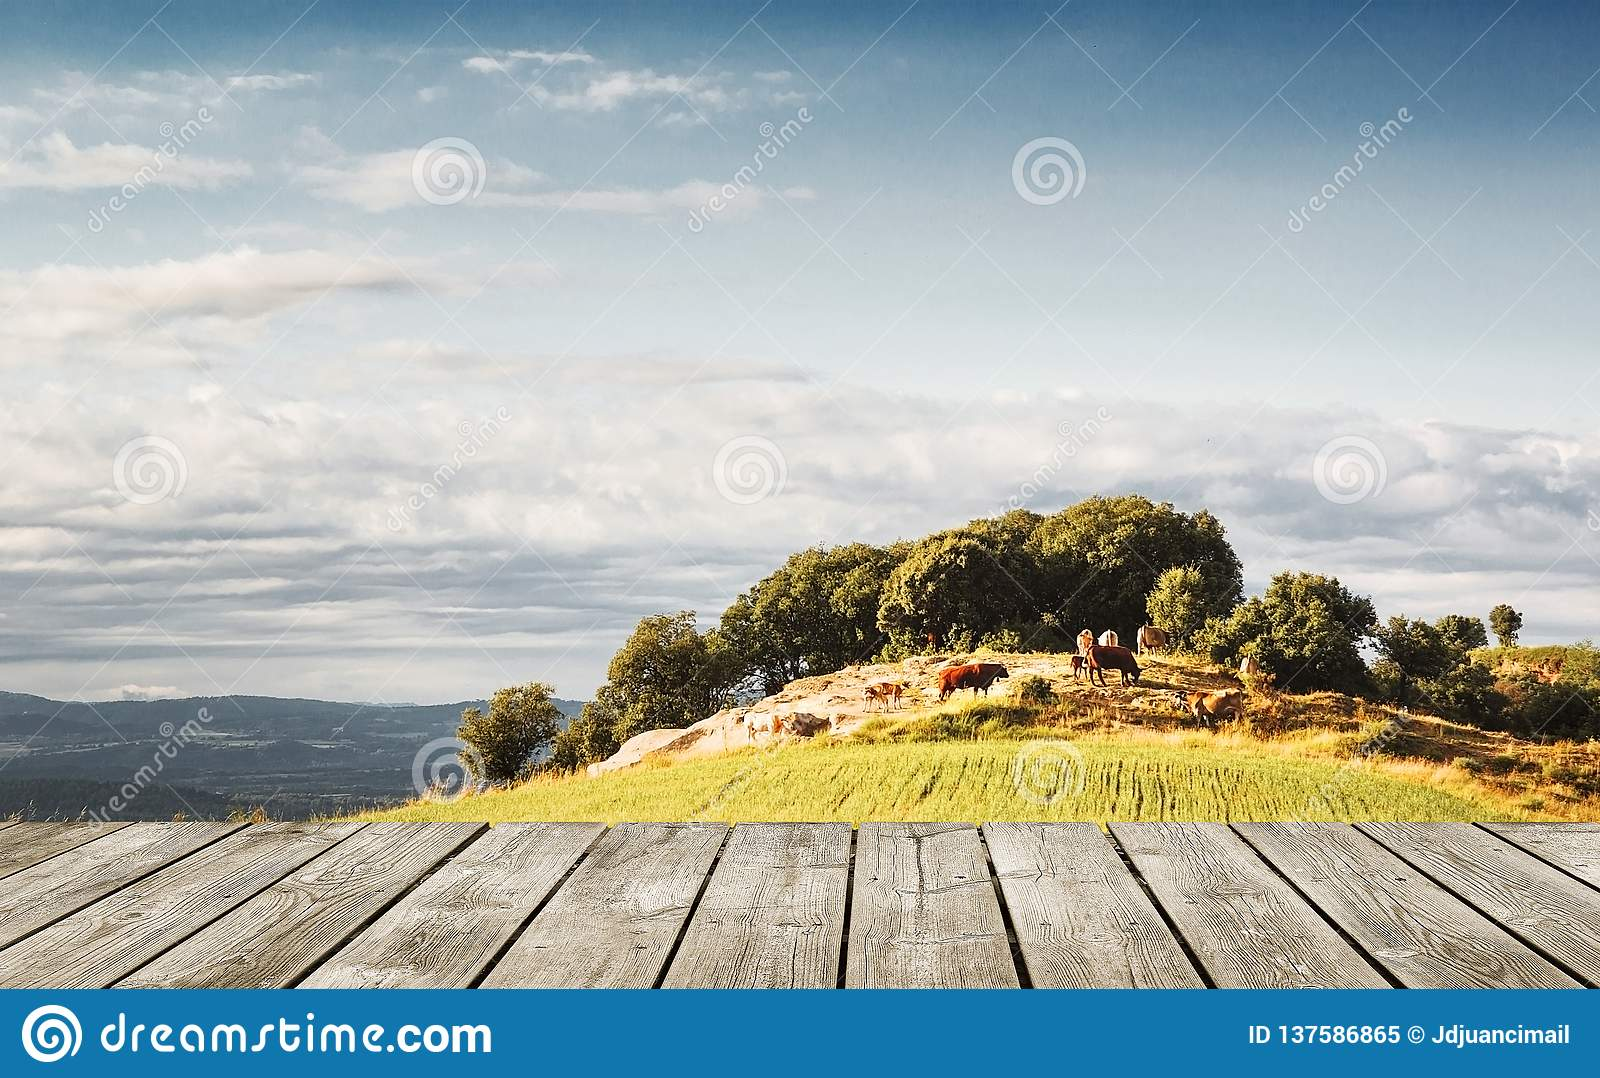 Wooden plank table against a natural farming background in the nature. Empty copy space